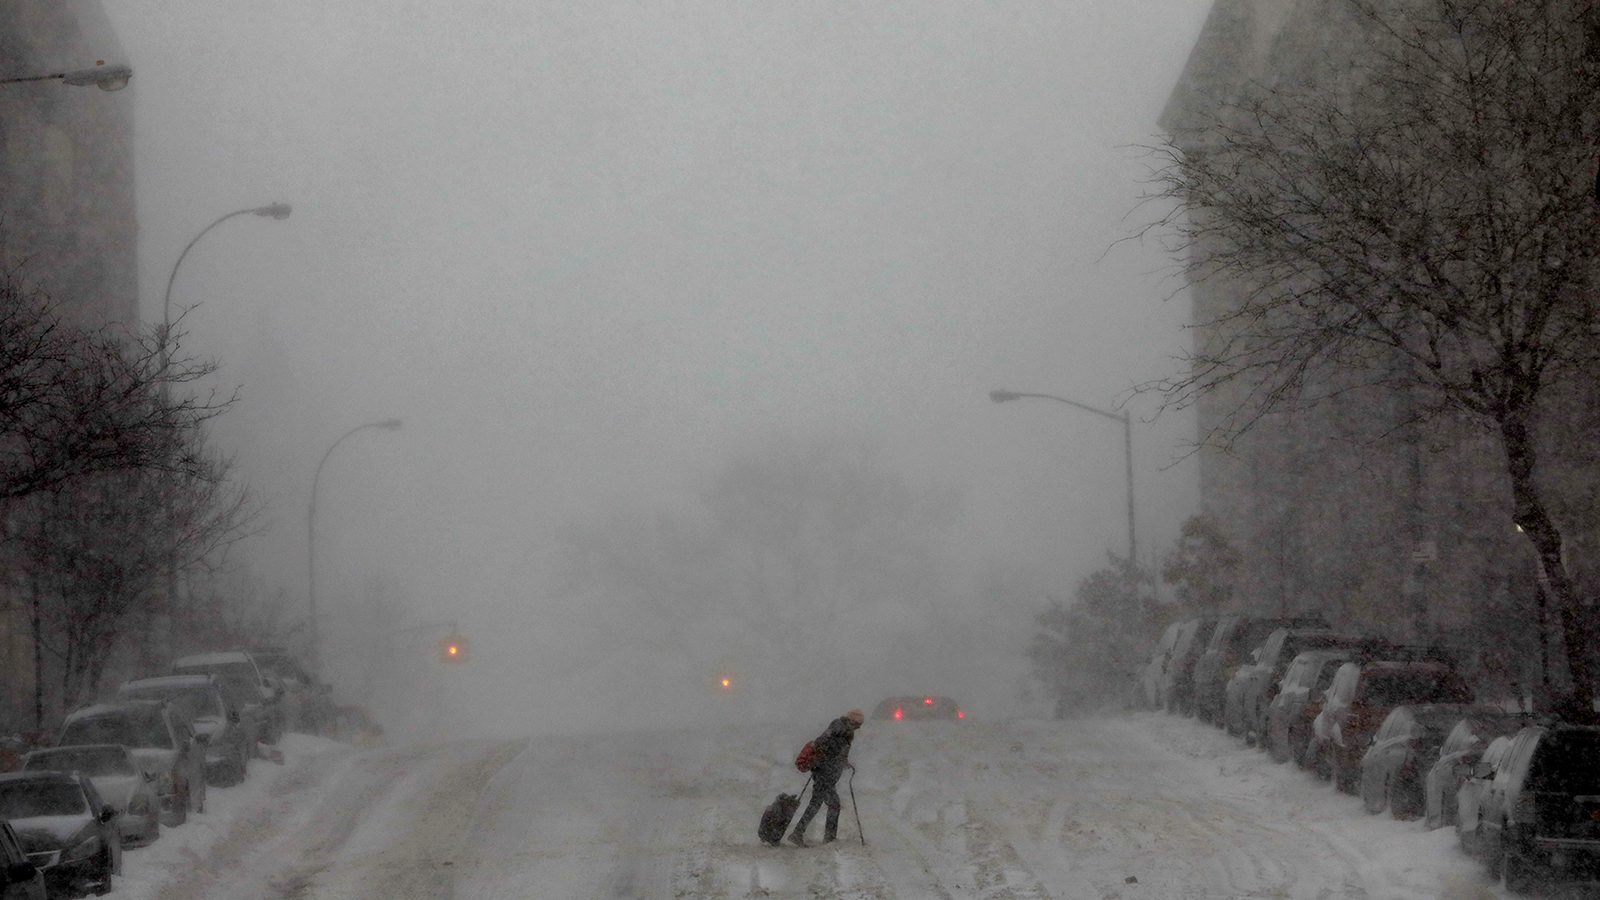 A woman struggles across a snow-covered 145th Street in upper Manhattan during a snowstorm in New York City